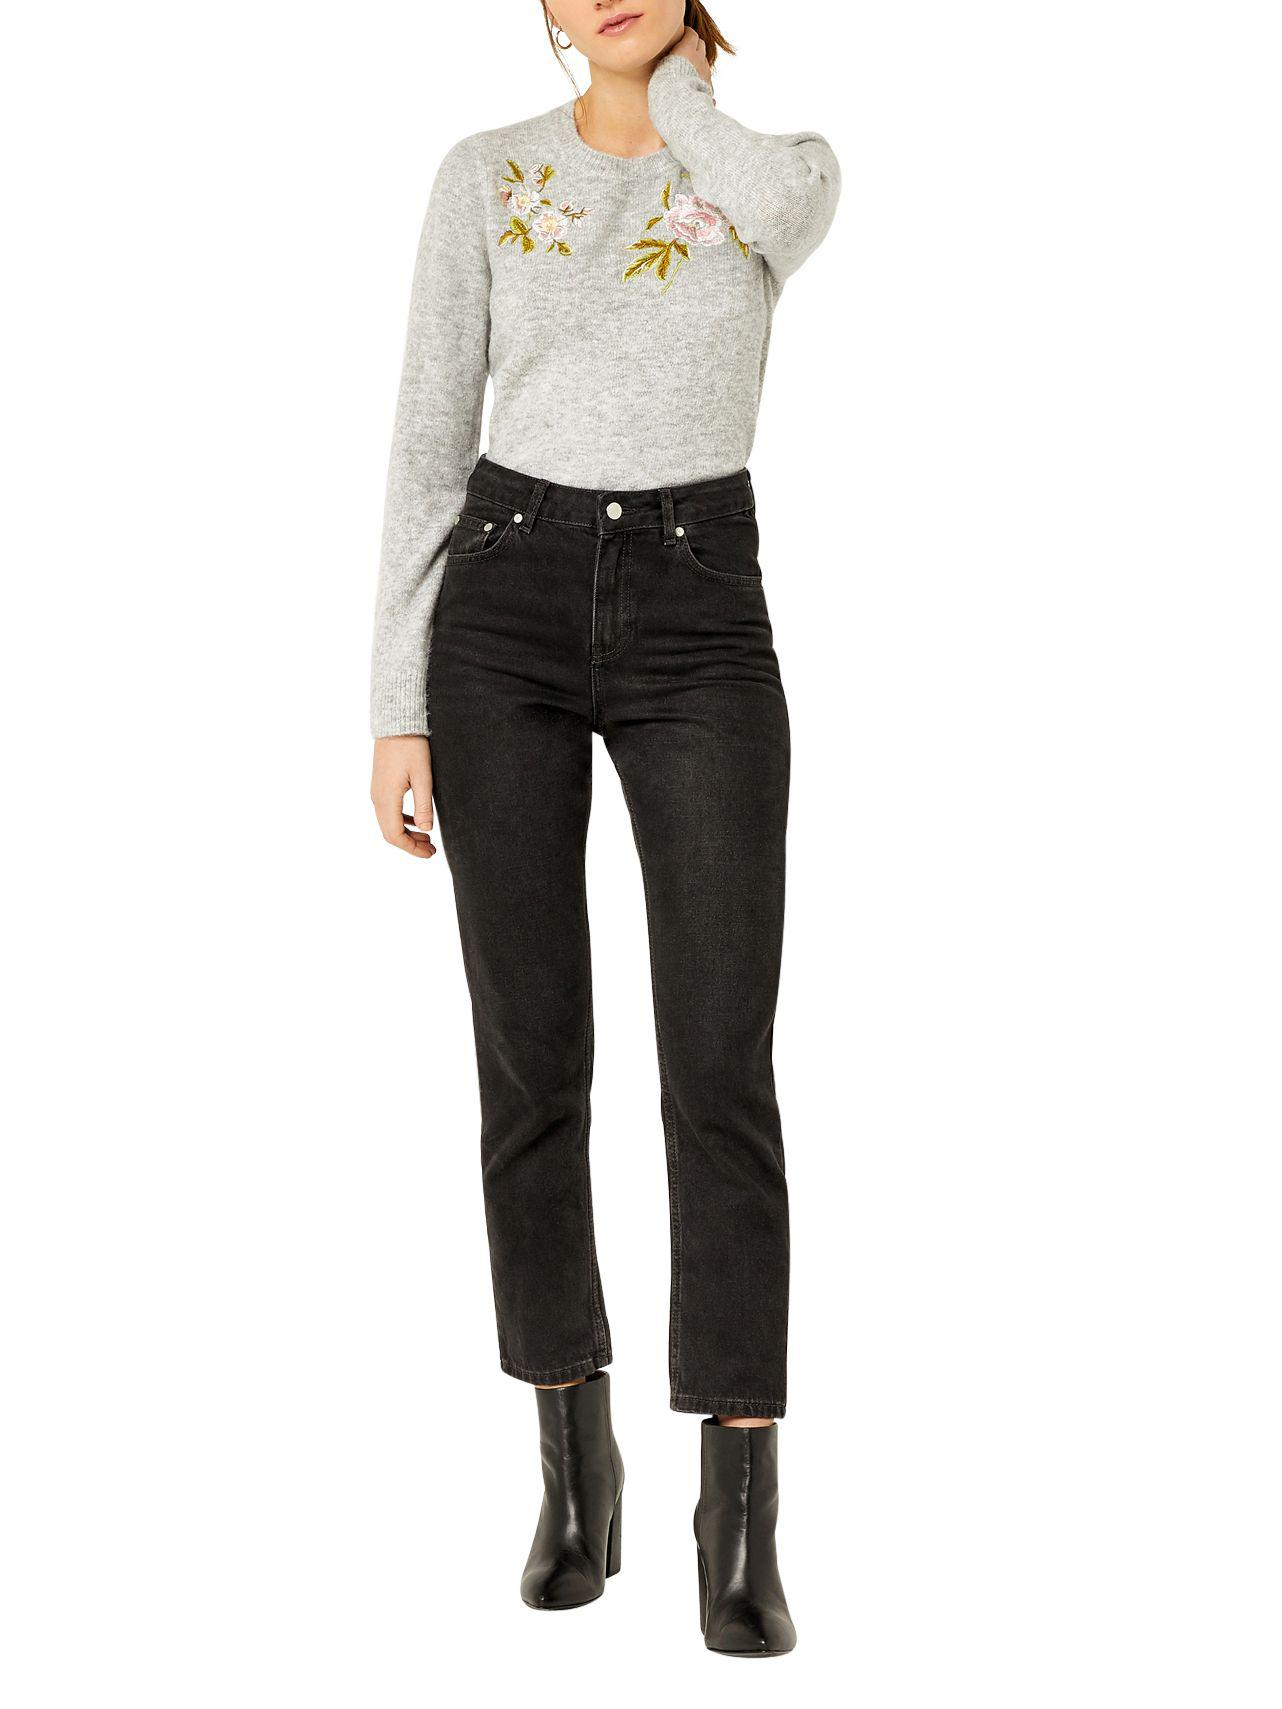 Warehouse Synthetic Molly Embroidered Jumper in Light Grey (Grey)